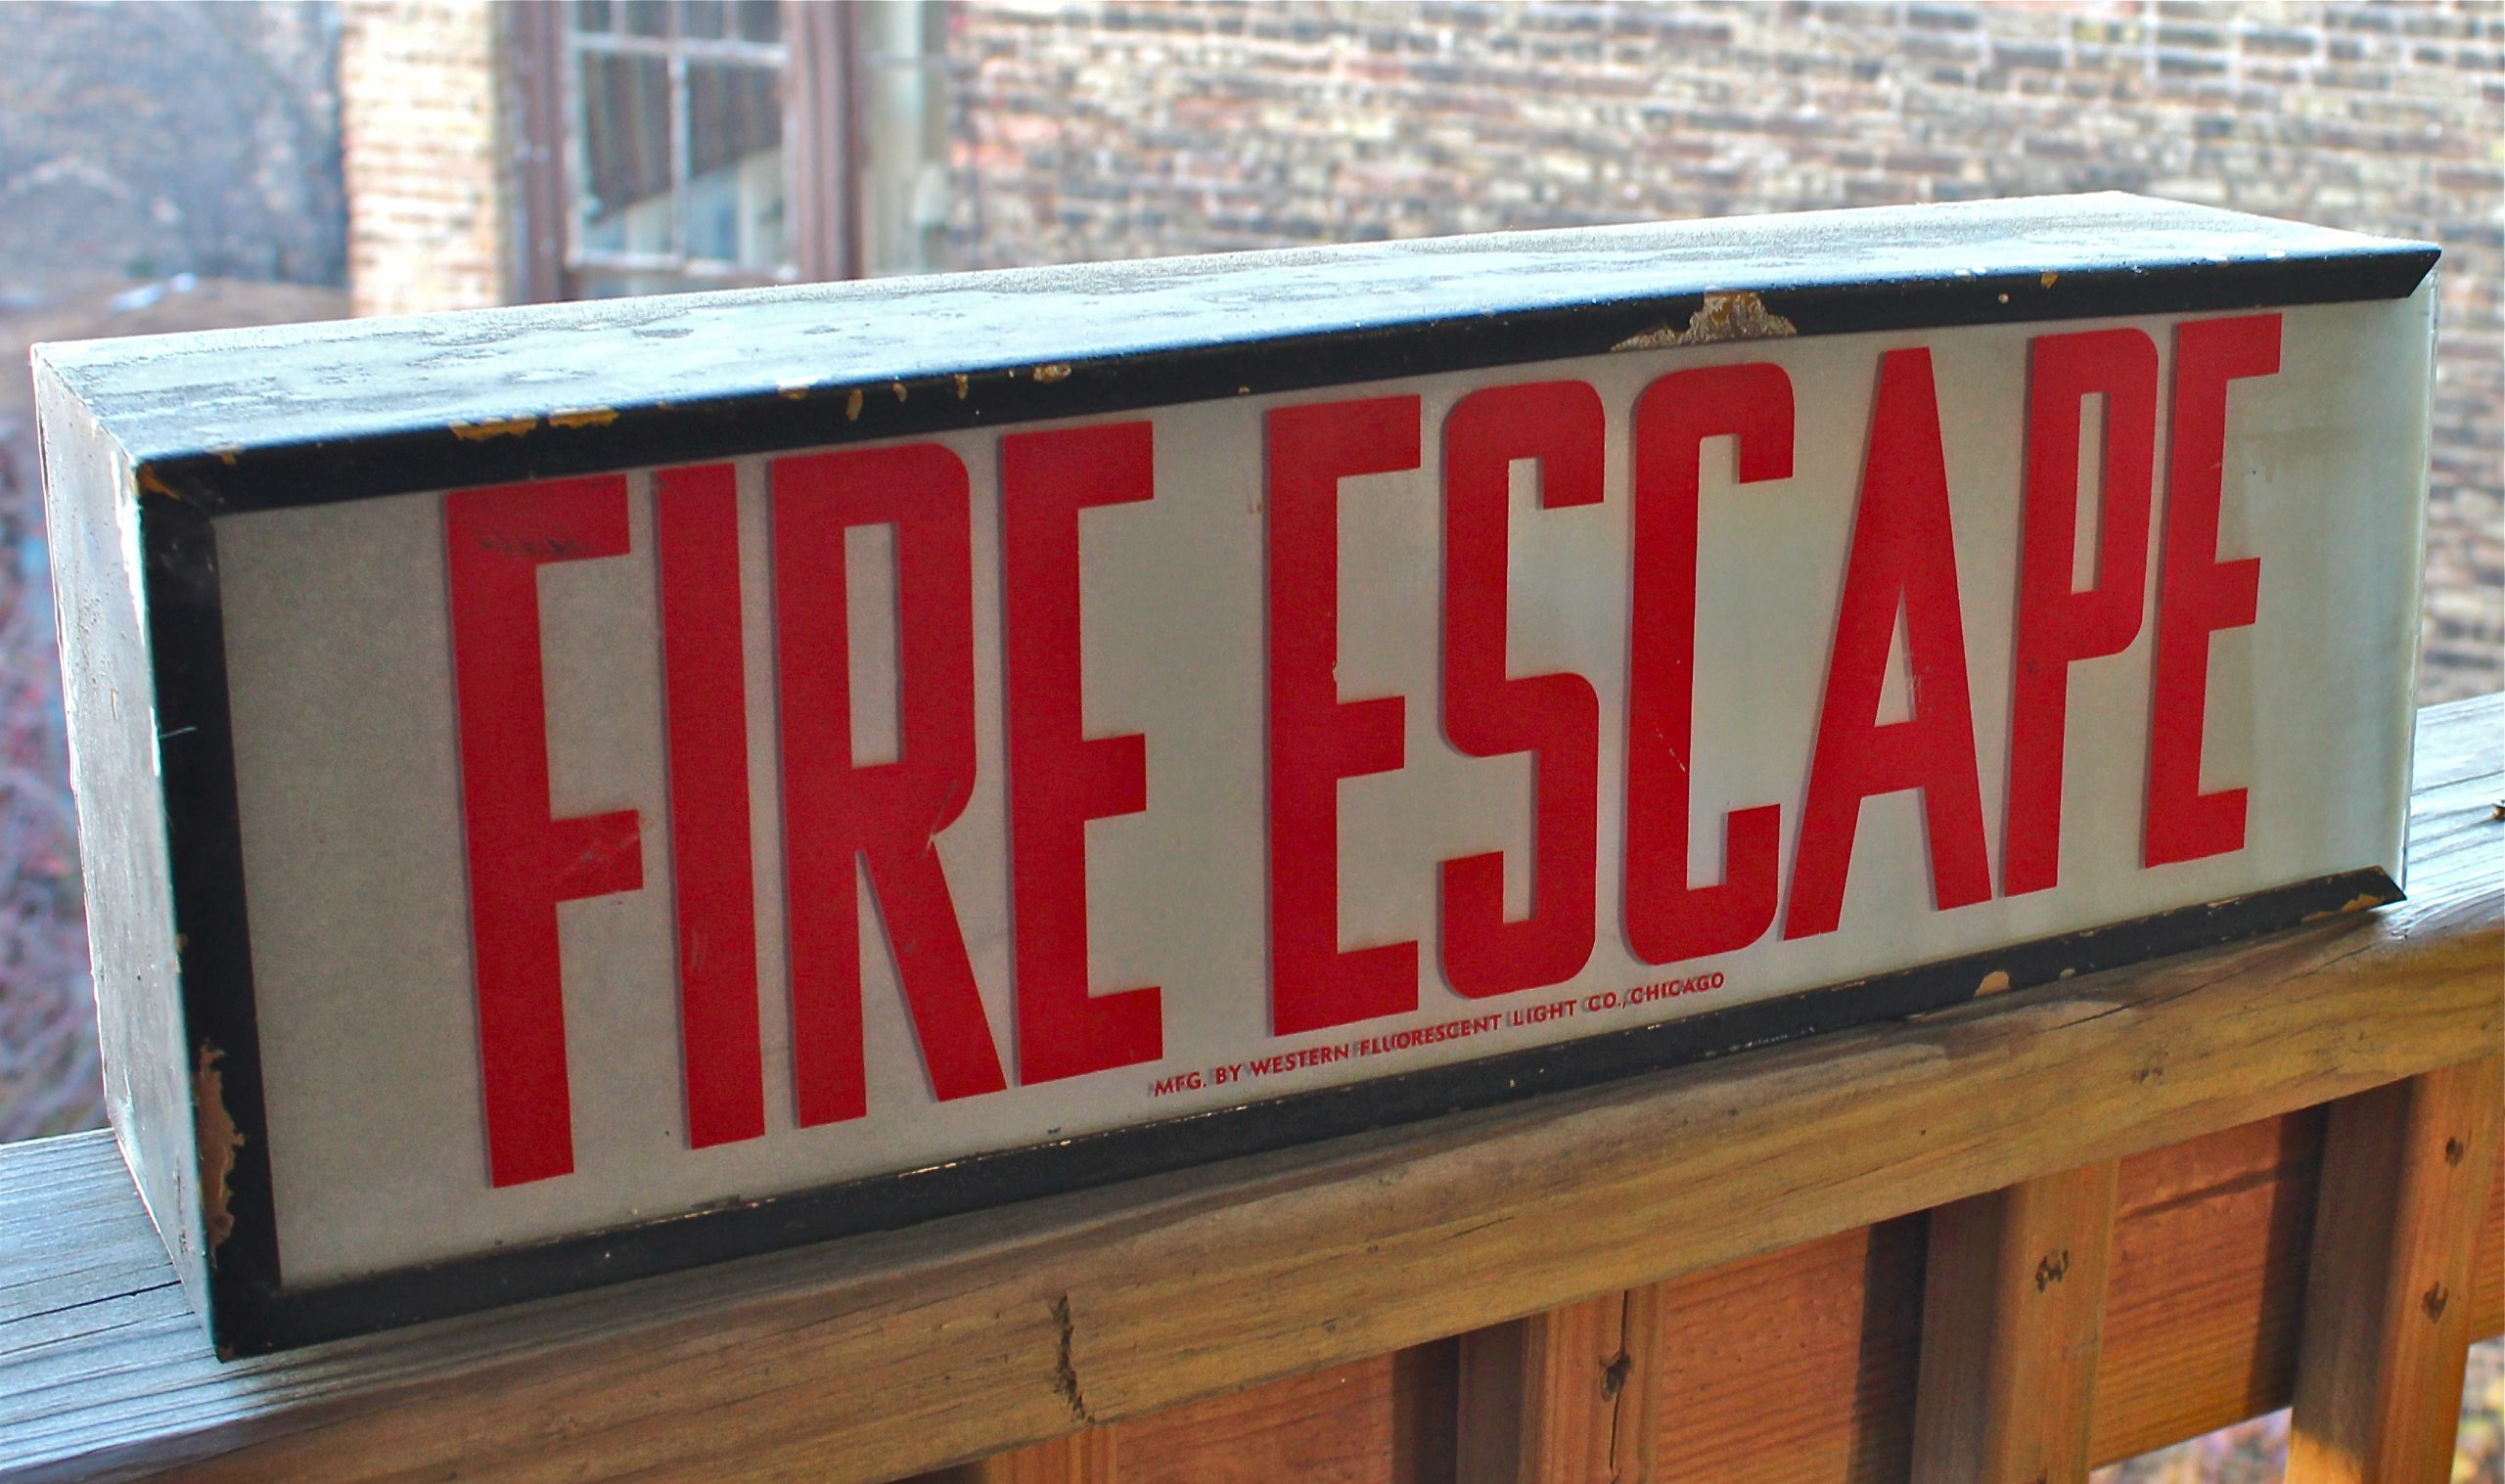 Western Fluorescent Light Co - Fire Escape Sign